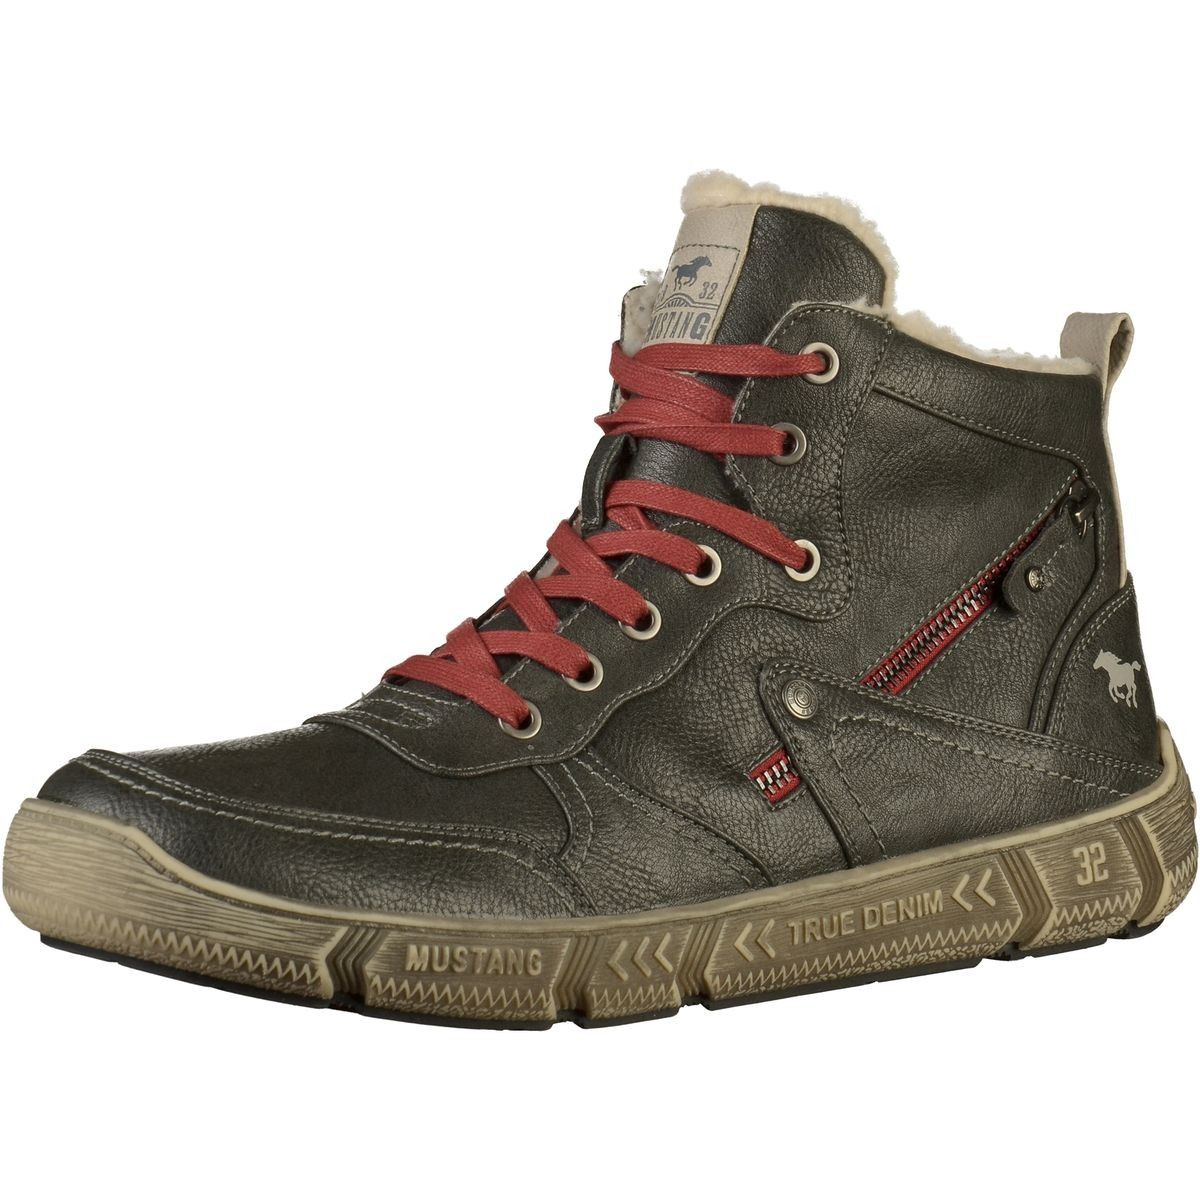 competitive price ed8c7 7cae1 Sneaker Imitation Cuir - Taille : 40;41;43;44;45;46;47 in ...